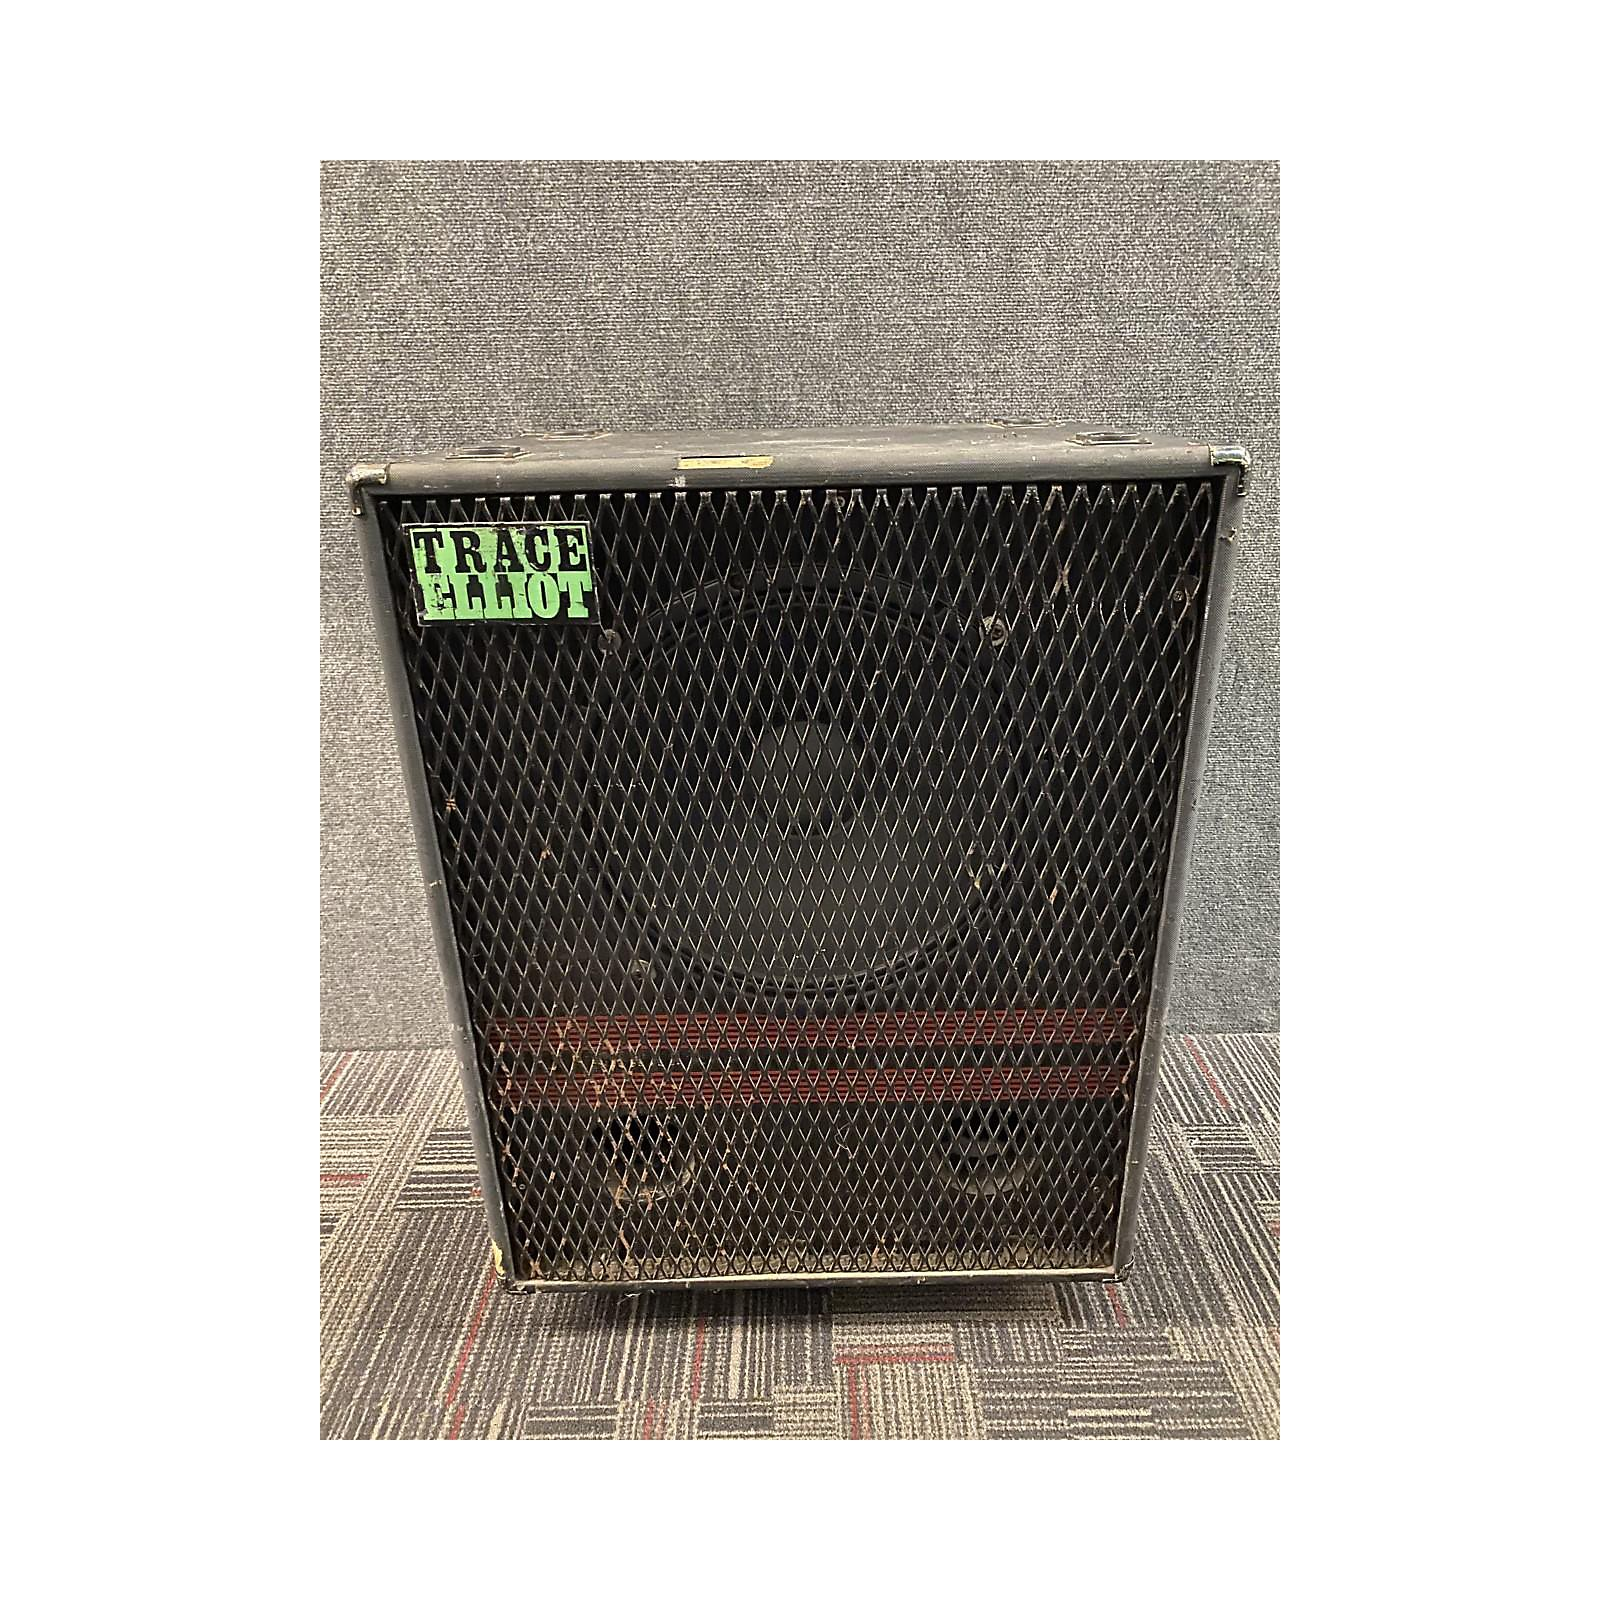 Trace Elliot Red Line 15 Bass Cabinet